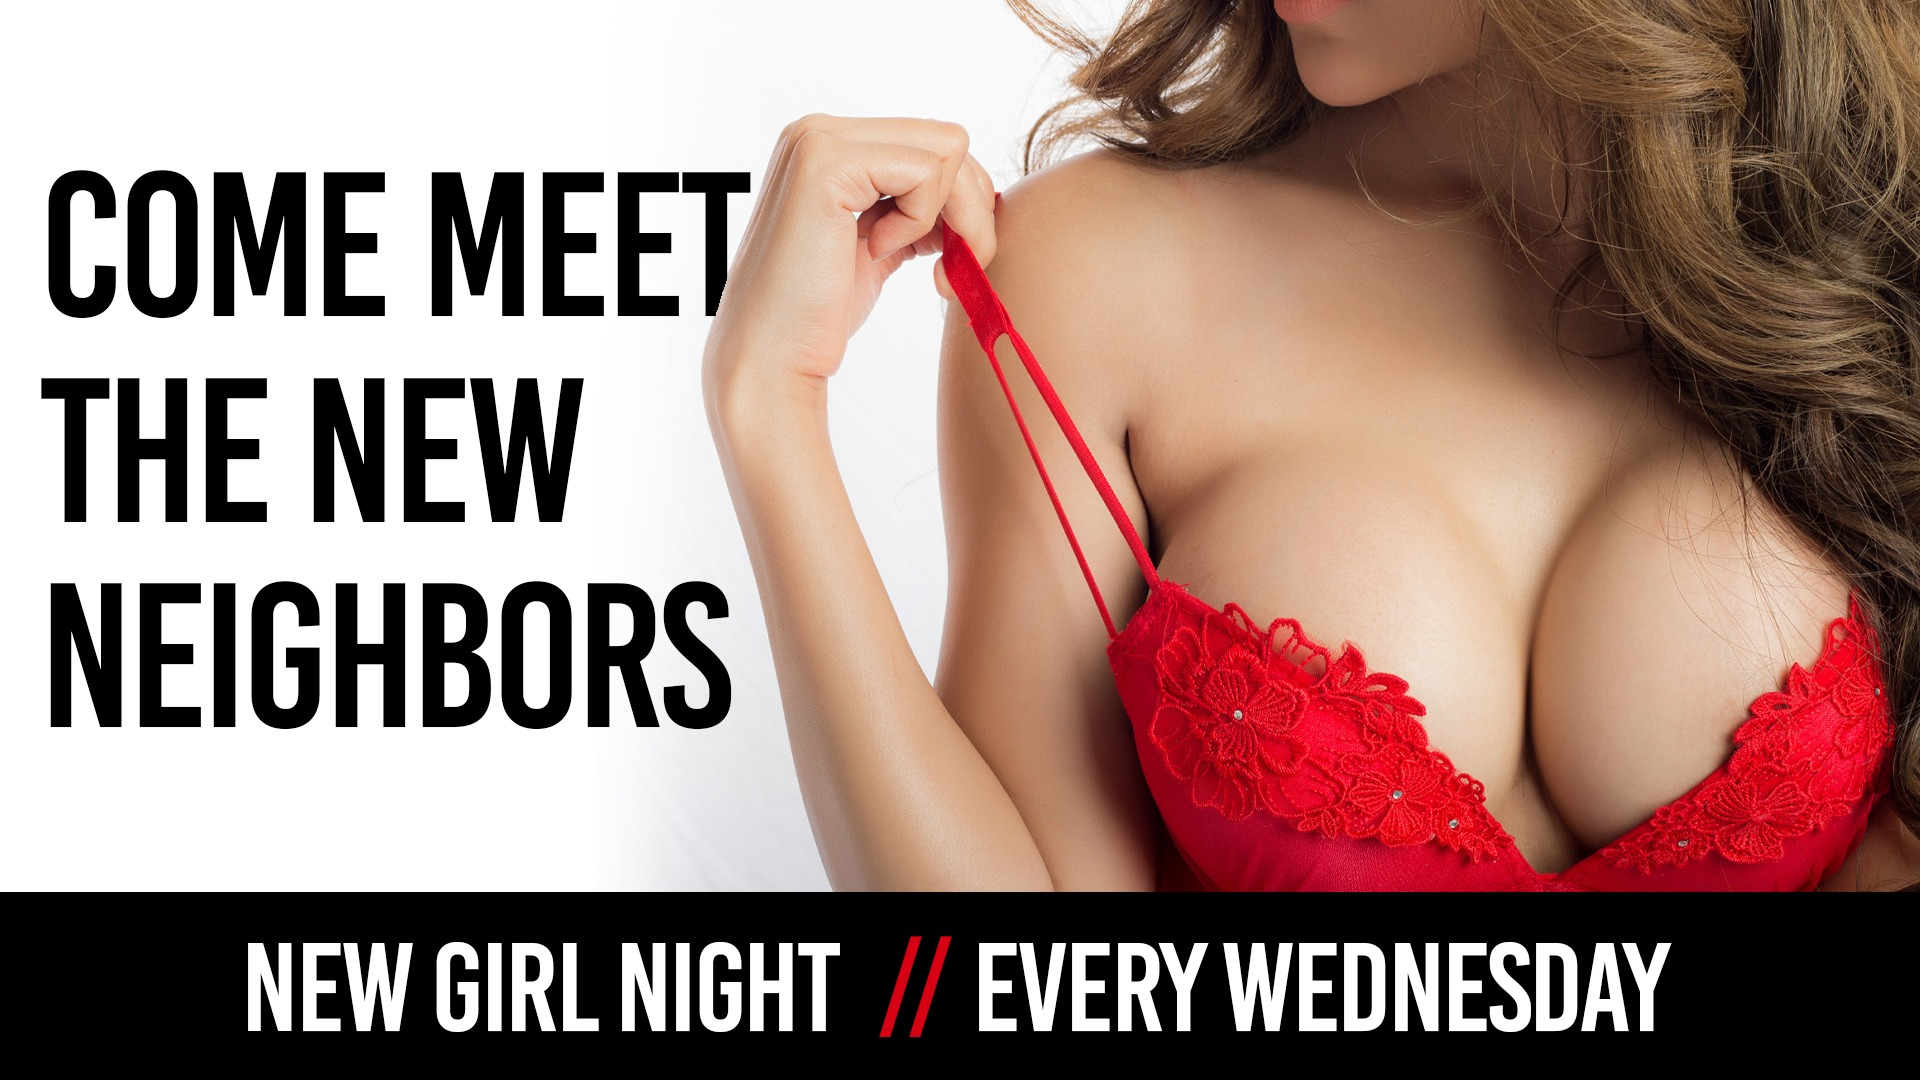 New Girl Night Every Wednesday